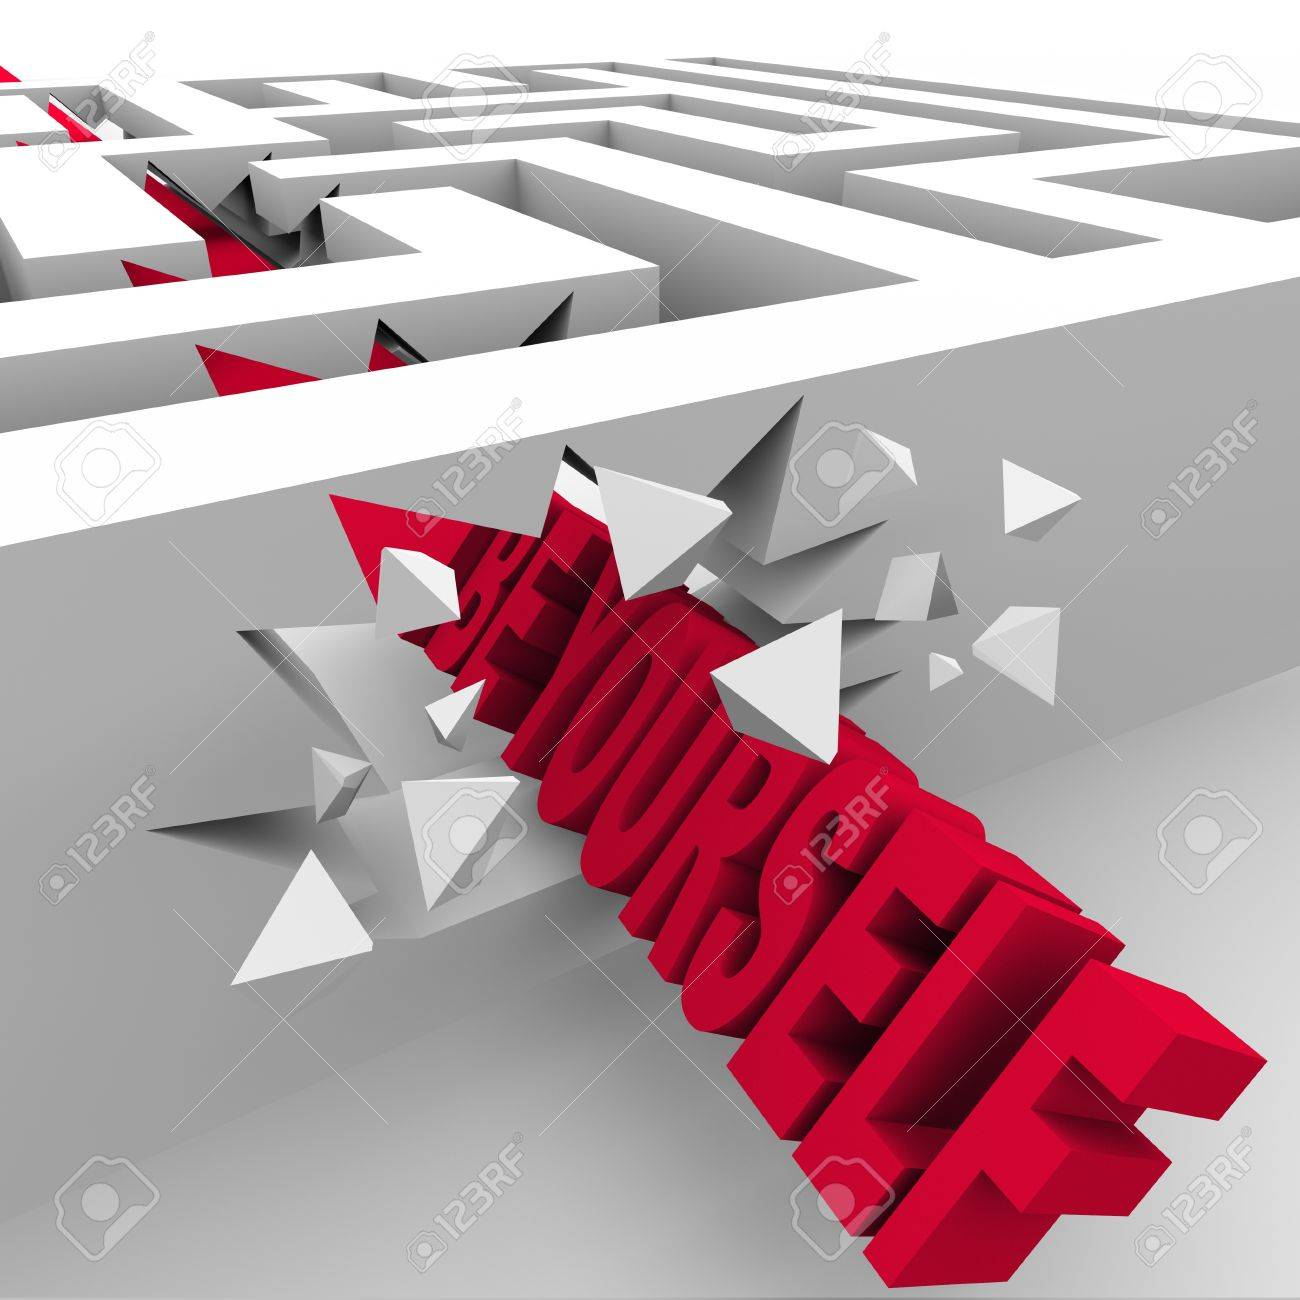 The words Be Yourself breaking through the walls of a maze or labyrinth to illustrate asserting your unique independence and changing the rules Stock Photo - 22027256